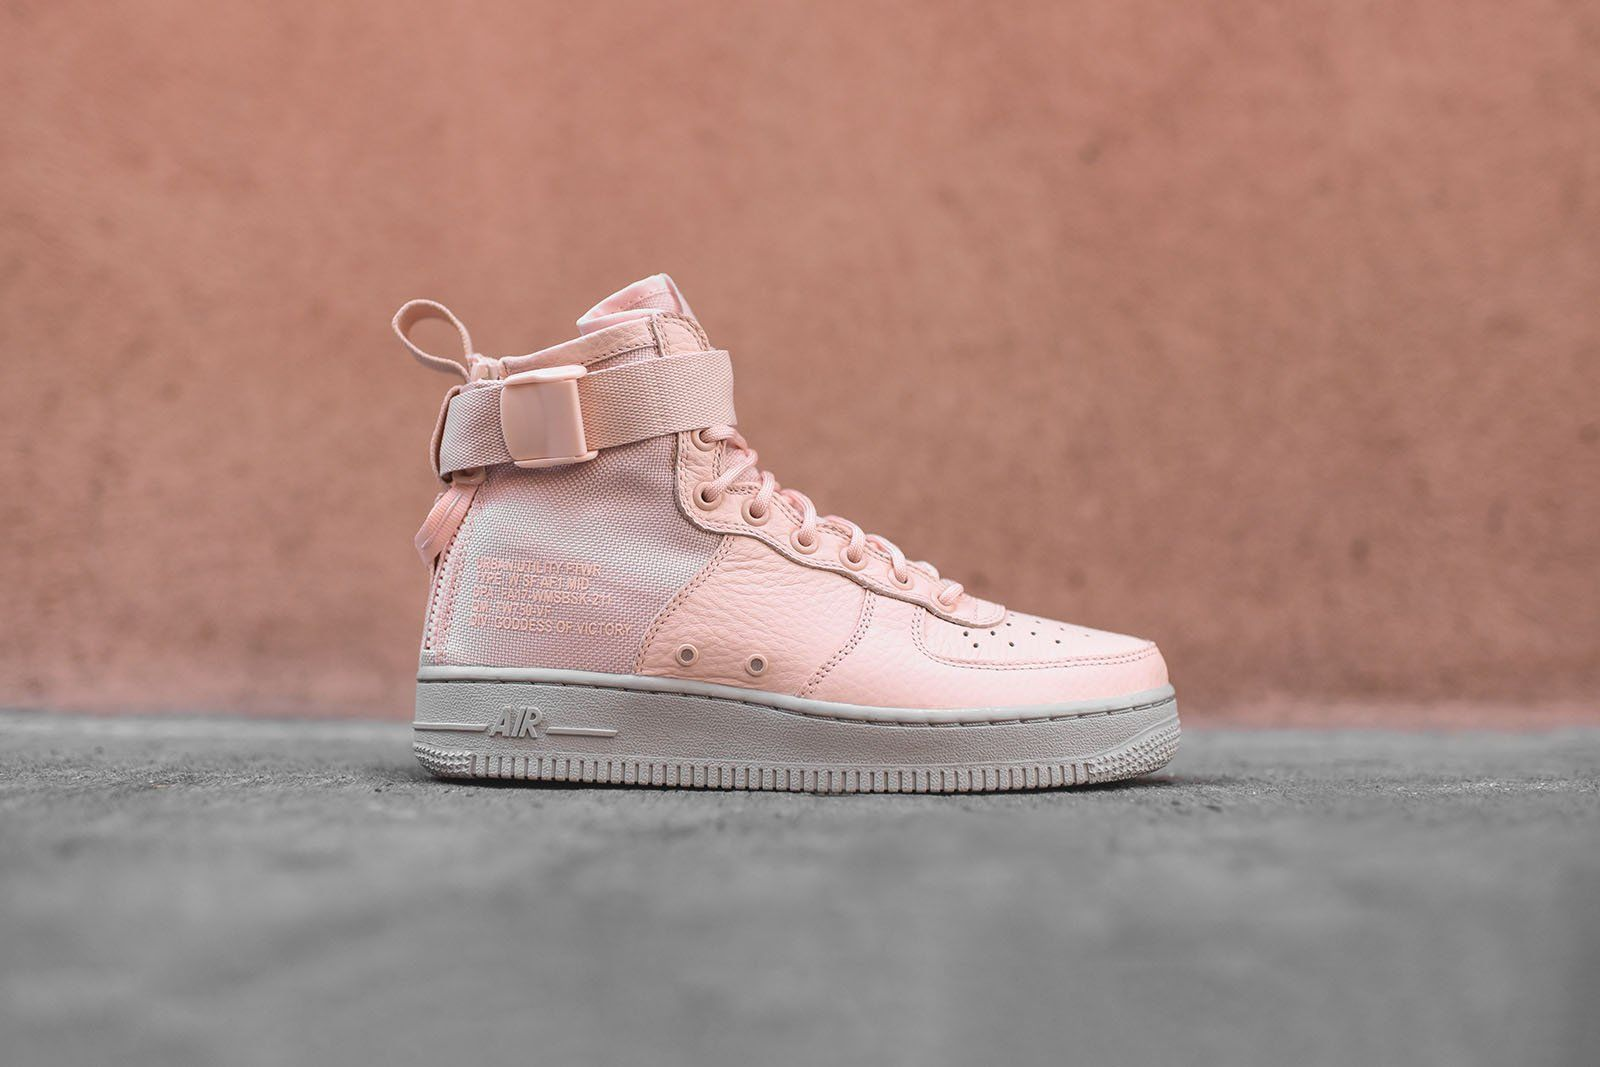 newest 44c18 45a29 Nike WMNS SF-AF1 Mid - Pink / Grey | Sneakers in 2019 | Nike ...